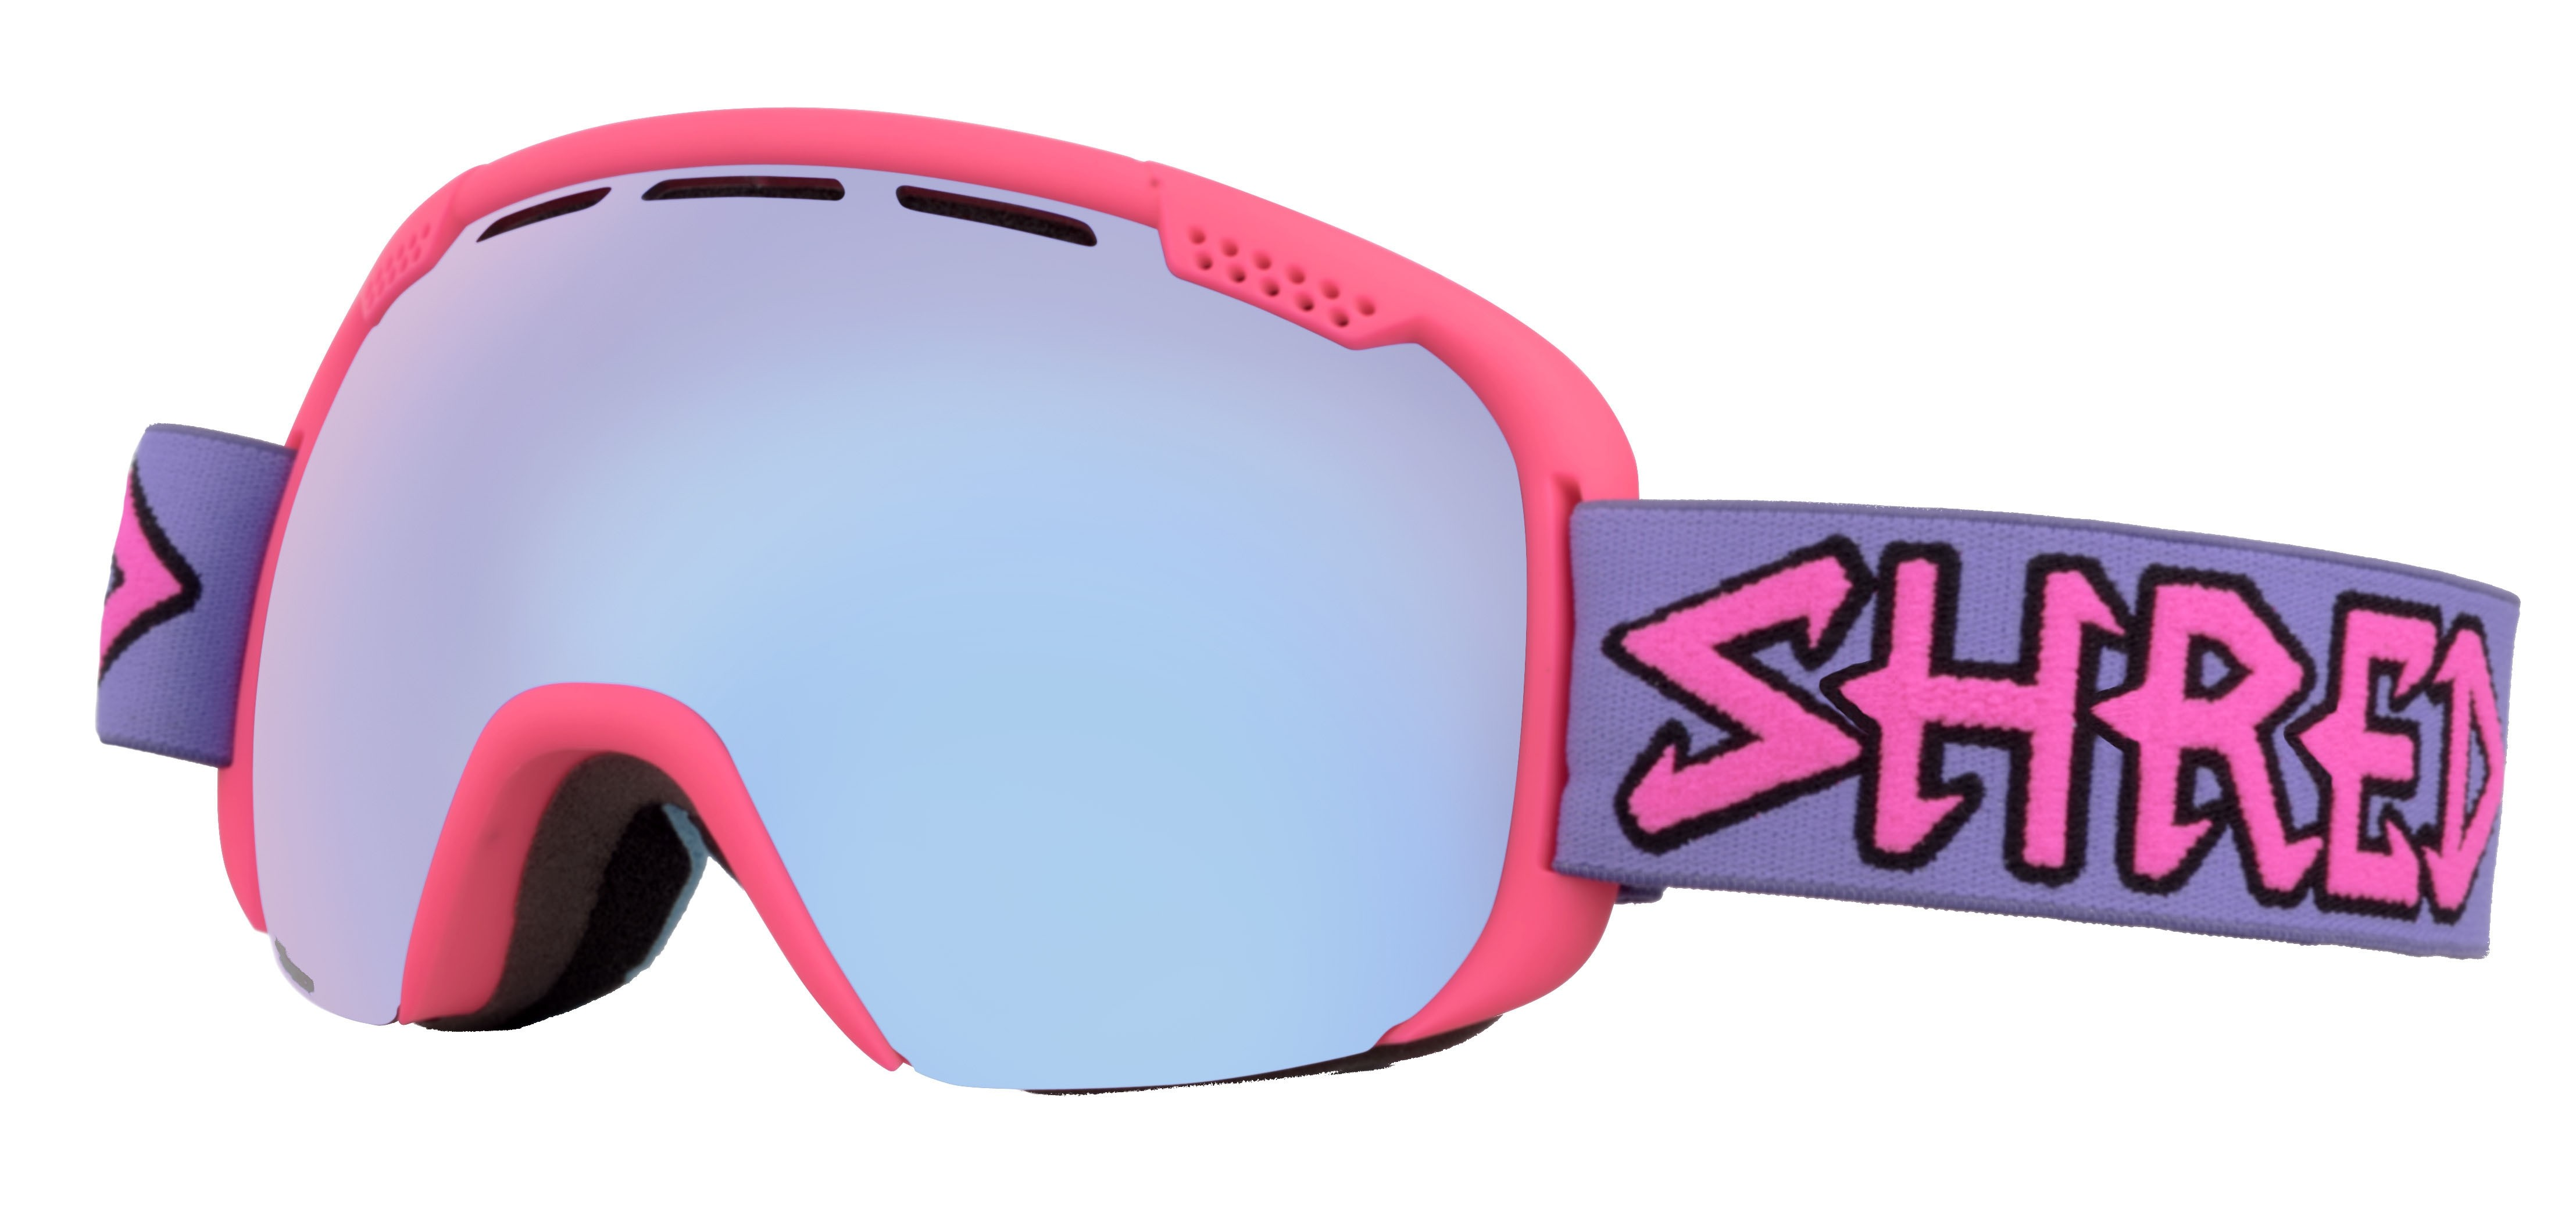 shred smartefy Air Pink